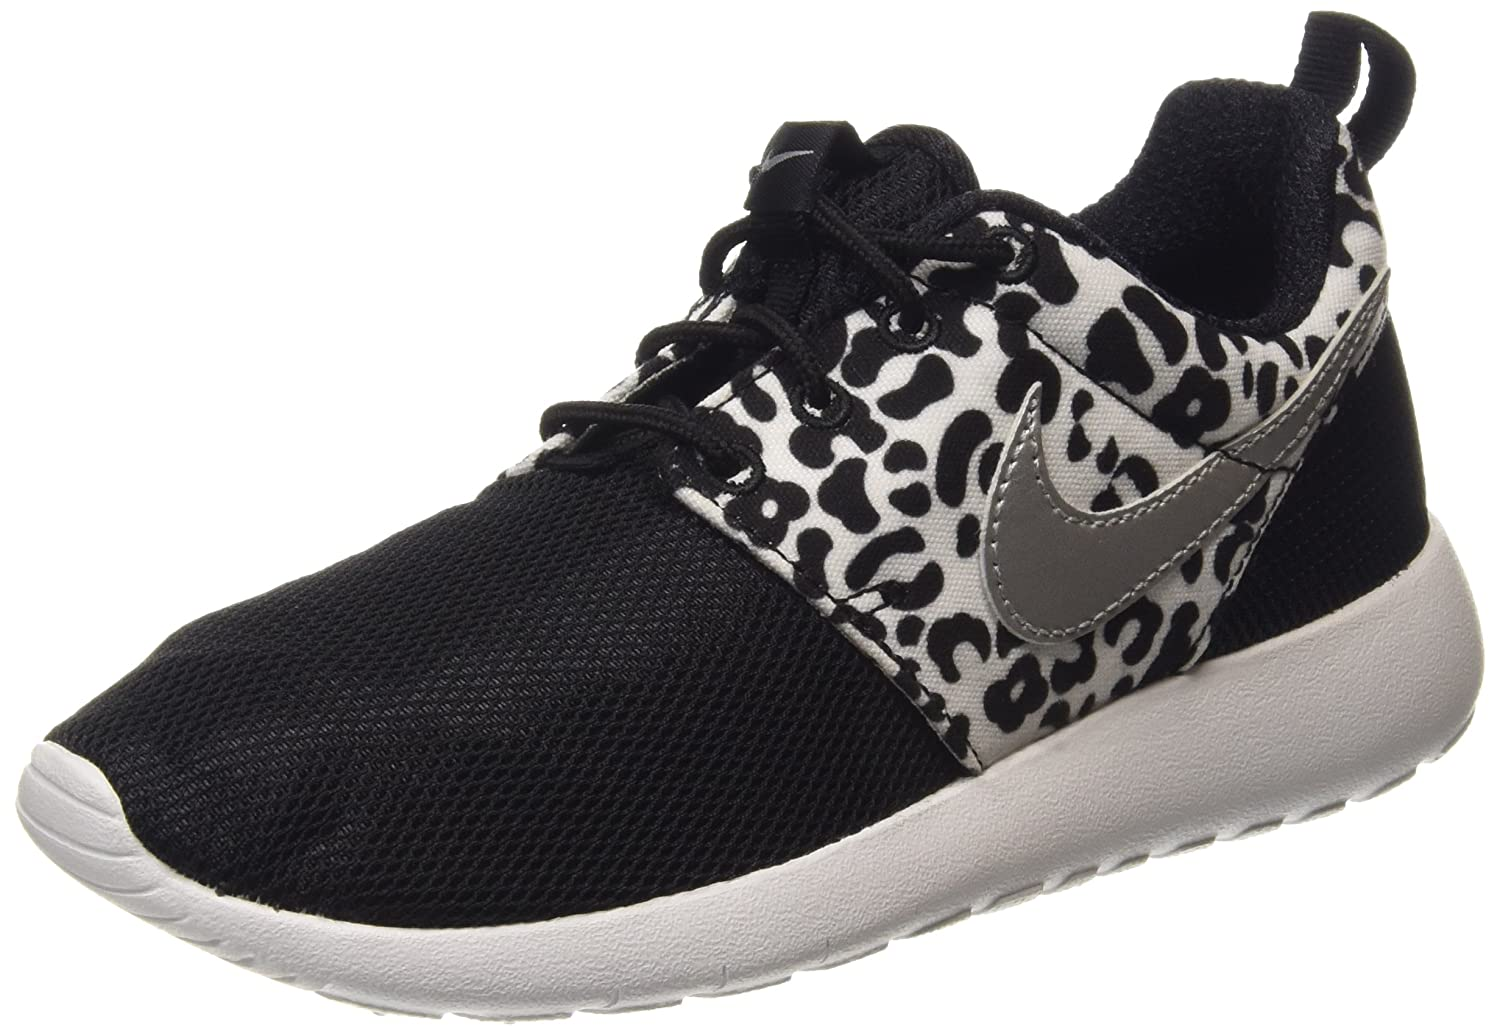 a0dd16c16f1 ... 50% off nike roshe one print gs unisex kids multisport indoor shoes  amazon shoes bags